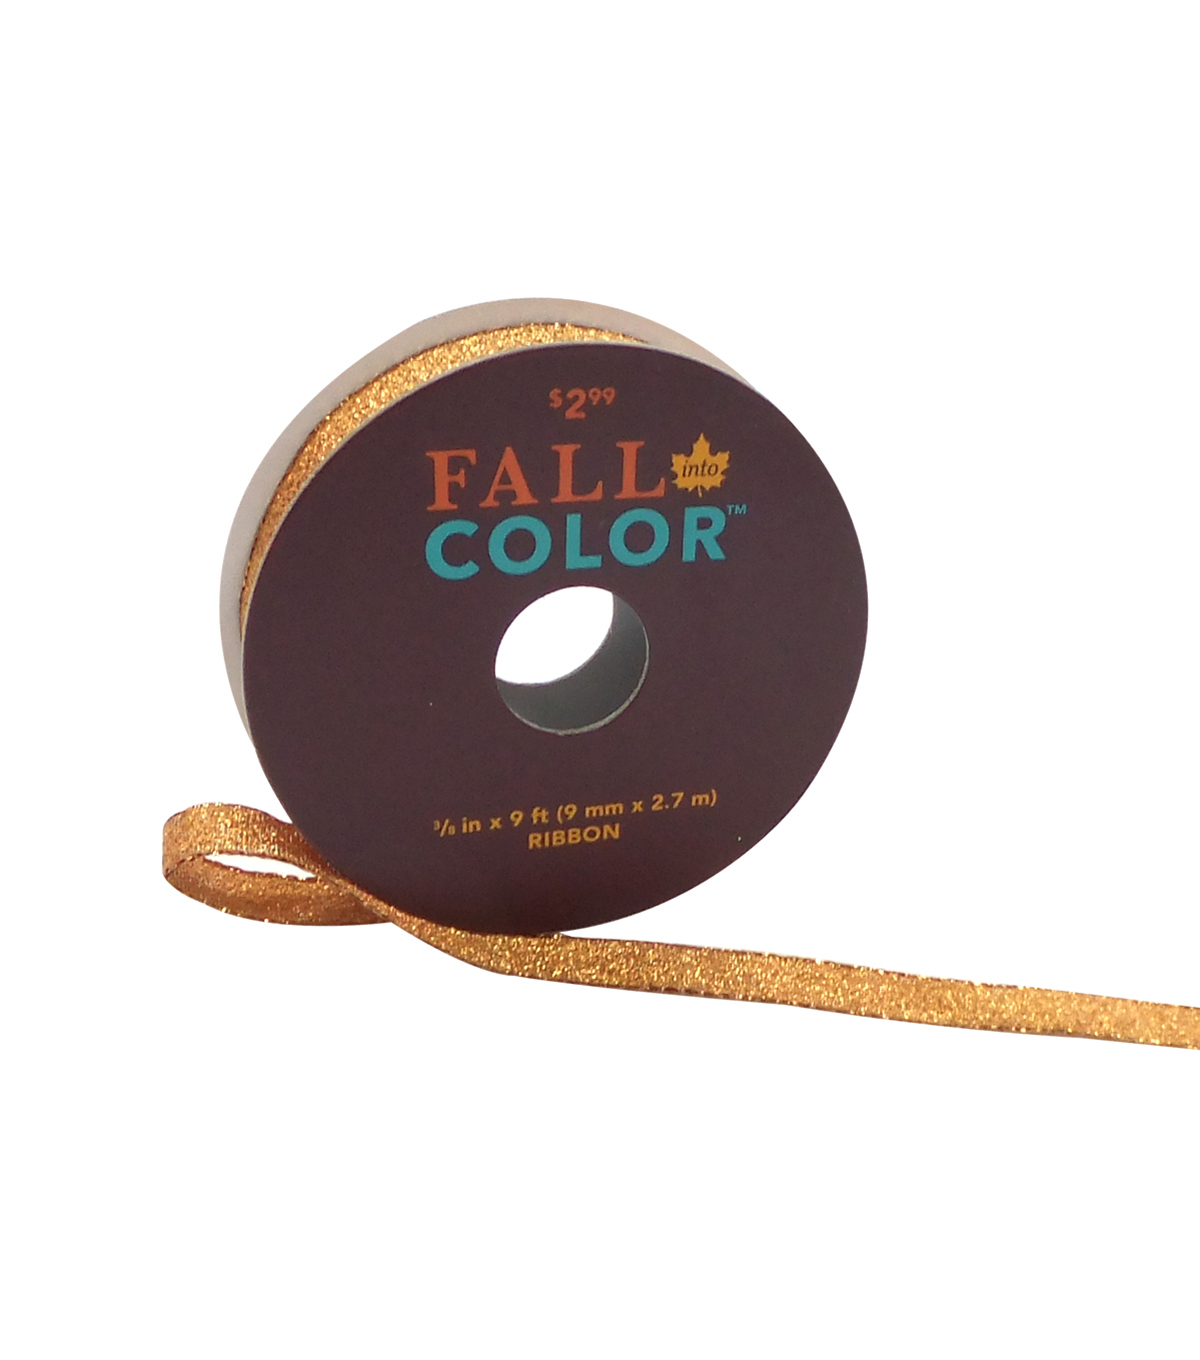 Fall Into Color Lame Ribbon 3/8''x9'-Copper